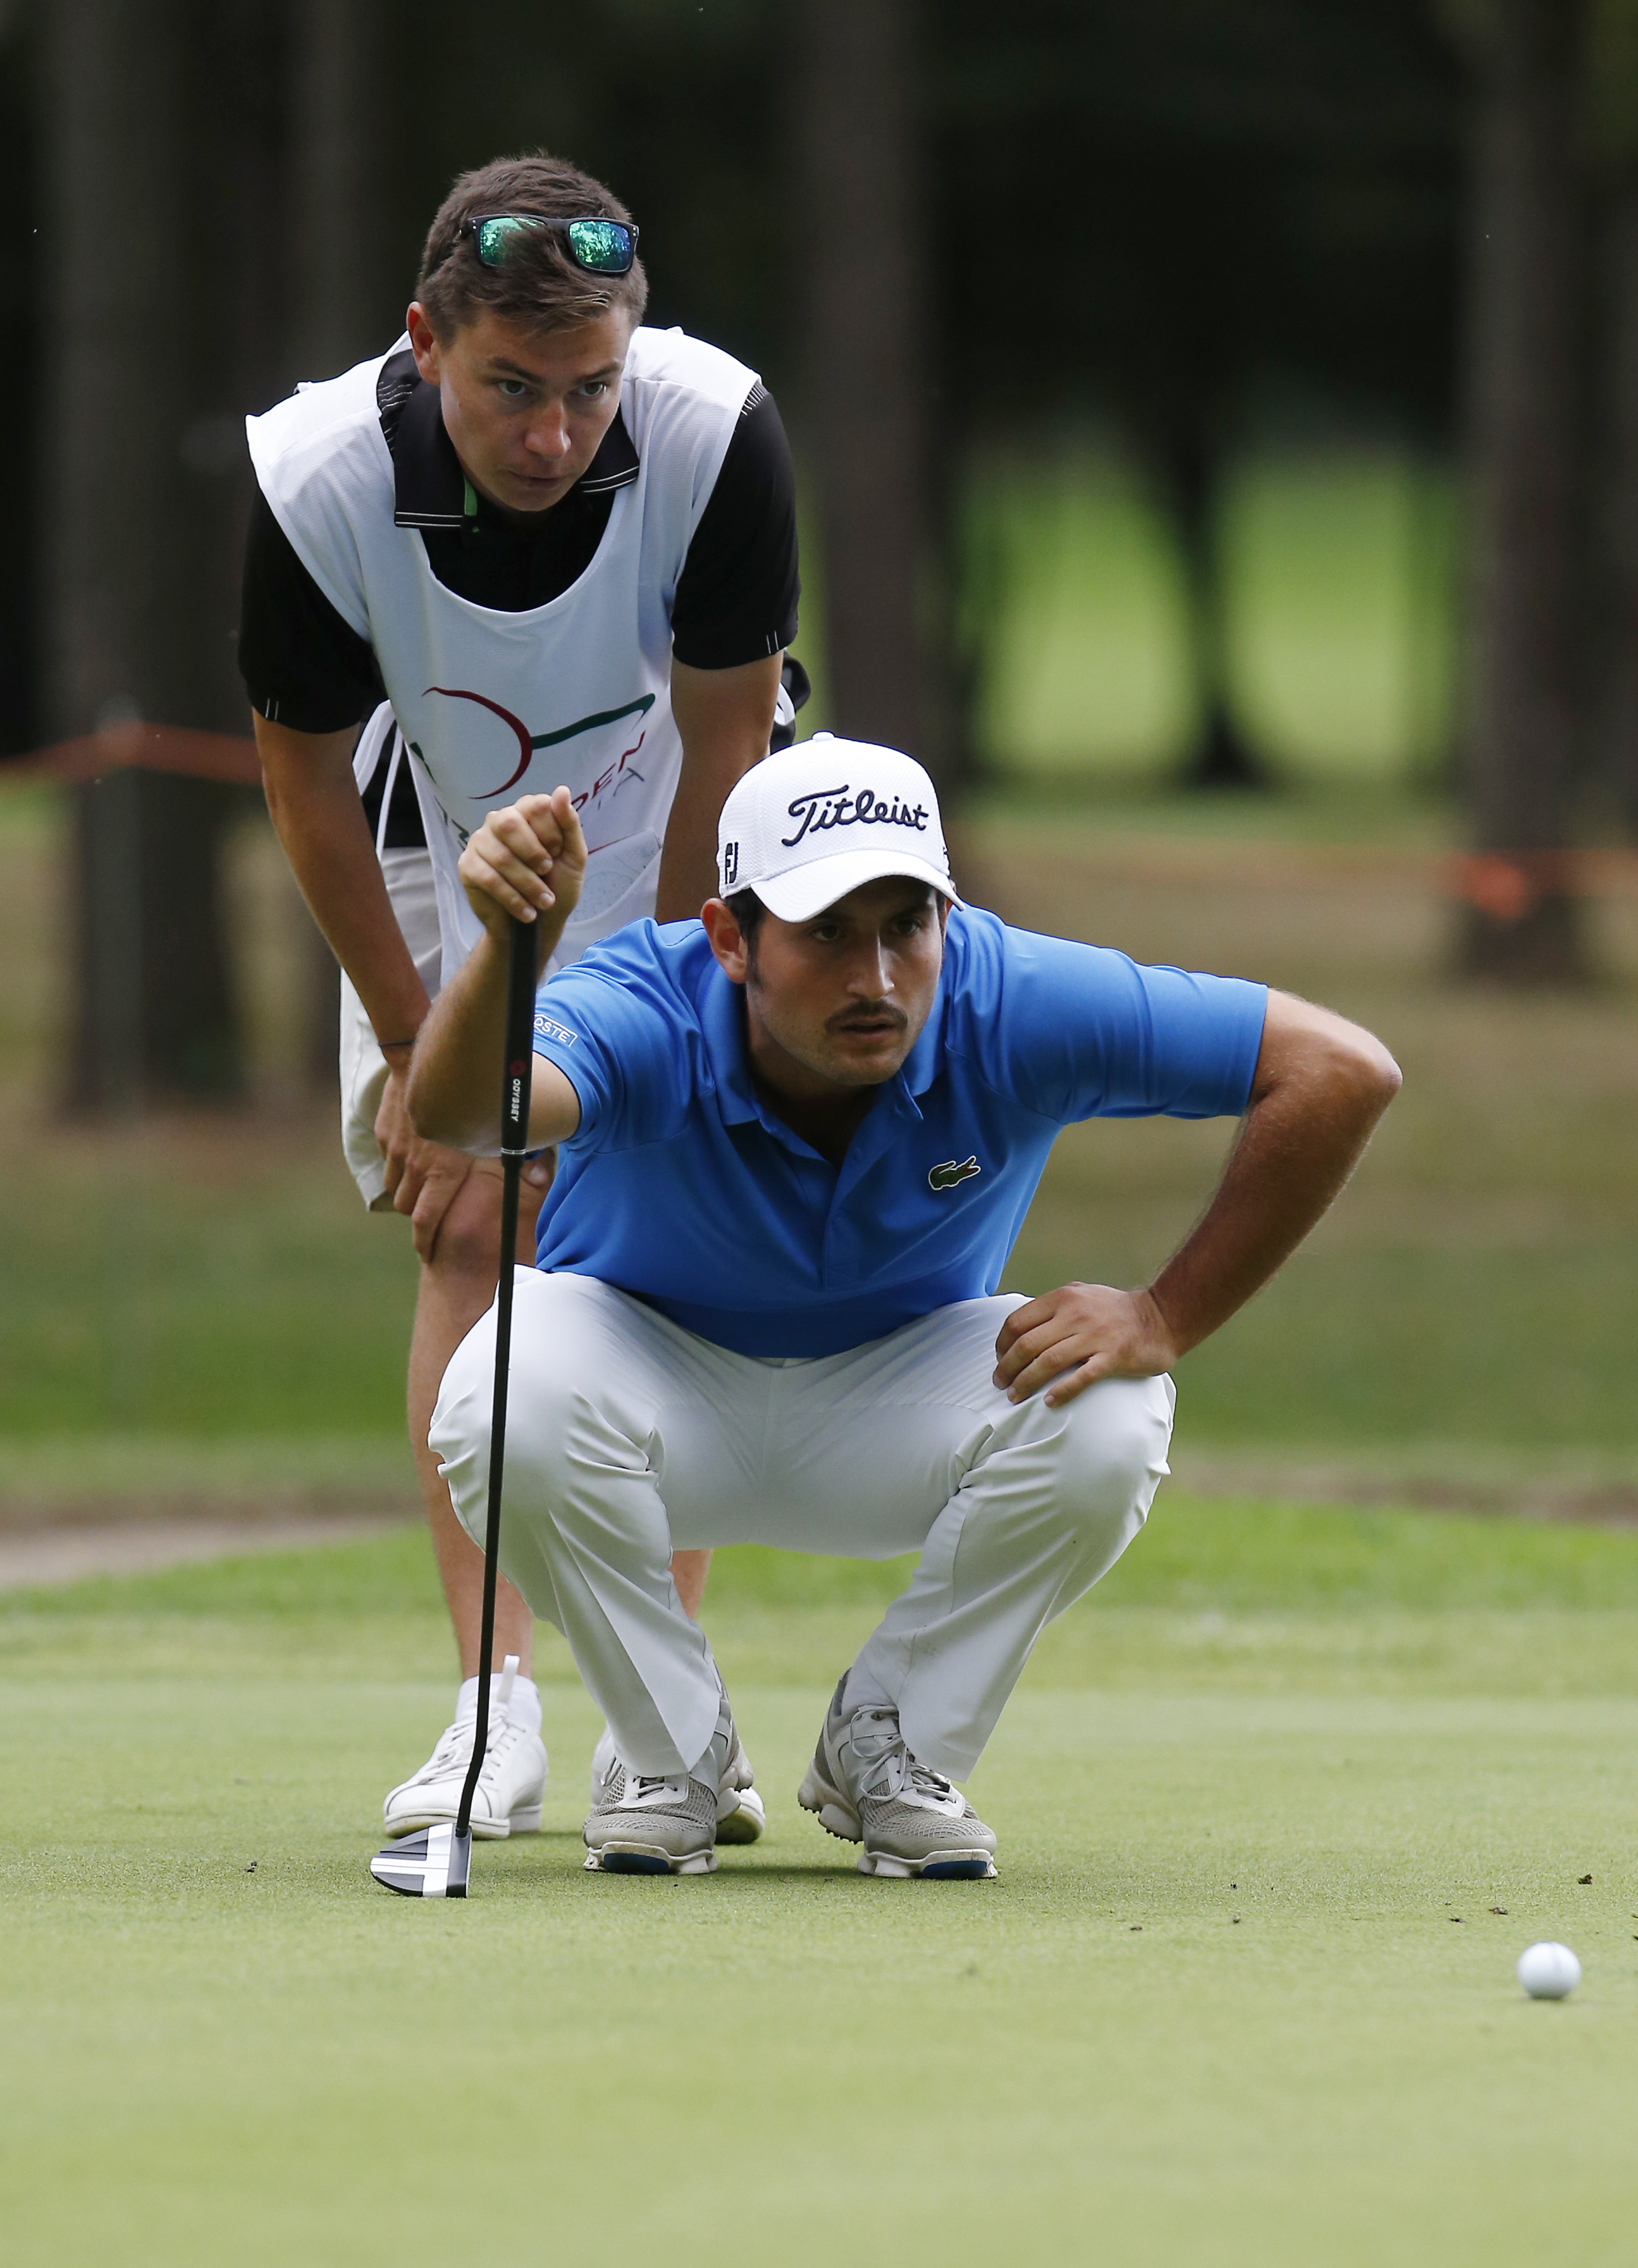 France's Alexander Levy, bottom, analyzes the green during the 73th Italy Open Golf Championship in Monza, Italy, Saturday, Sept. 17, 2016. (AP Photo/Antonio Calanni)